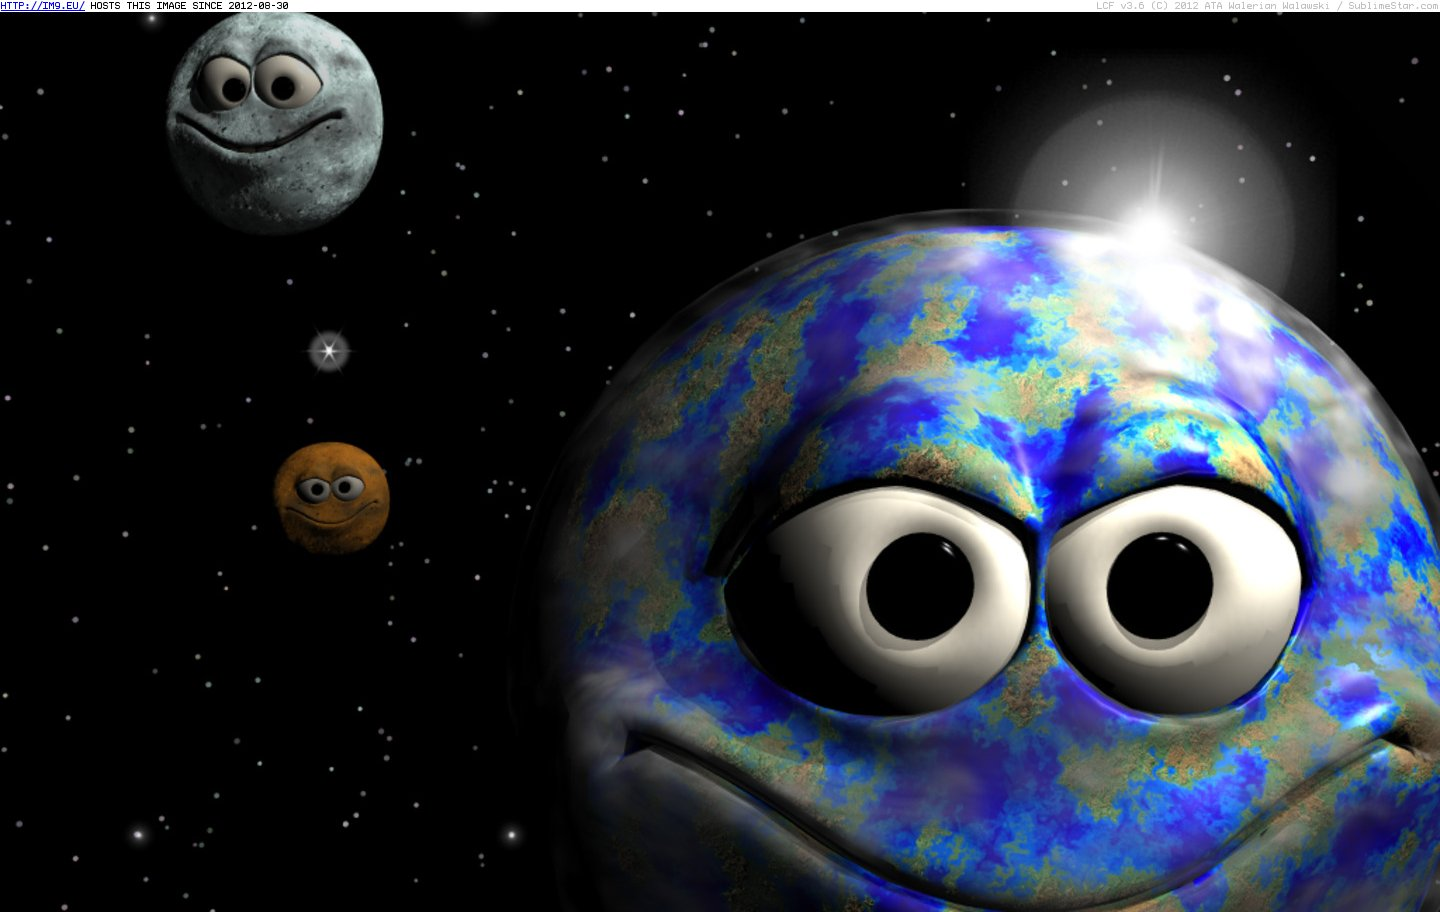 Smiley Wallpapers   Smileys Planets smiley wallpaper 1440x912